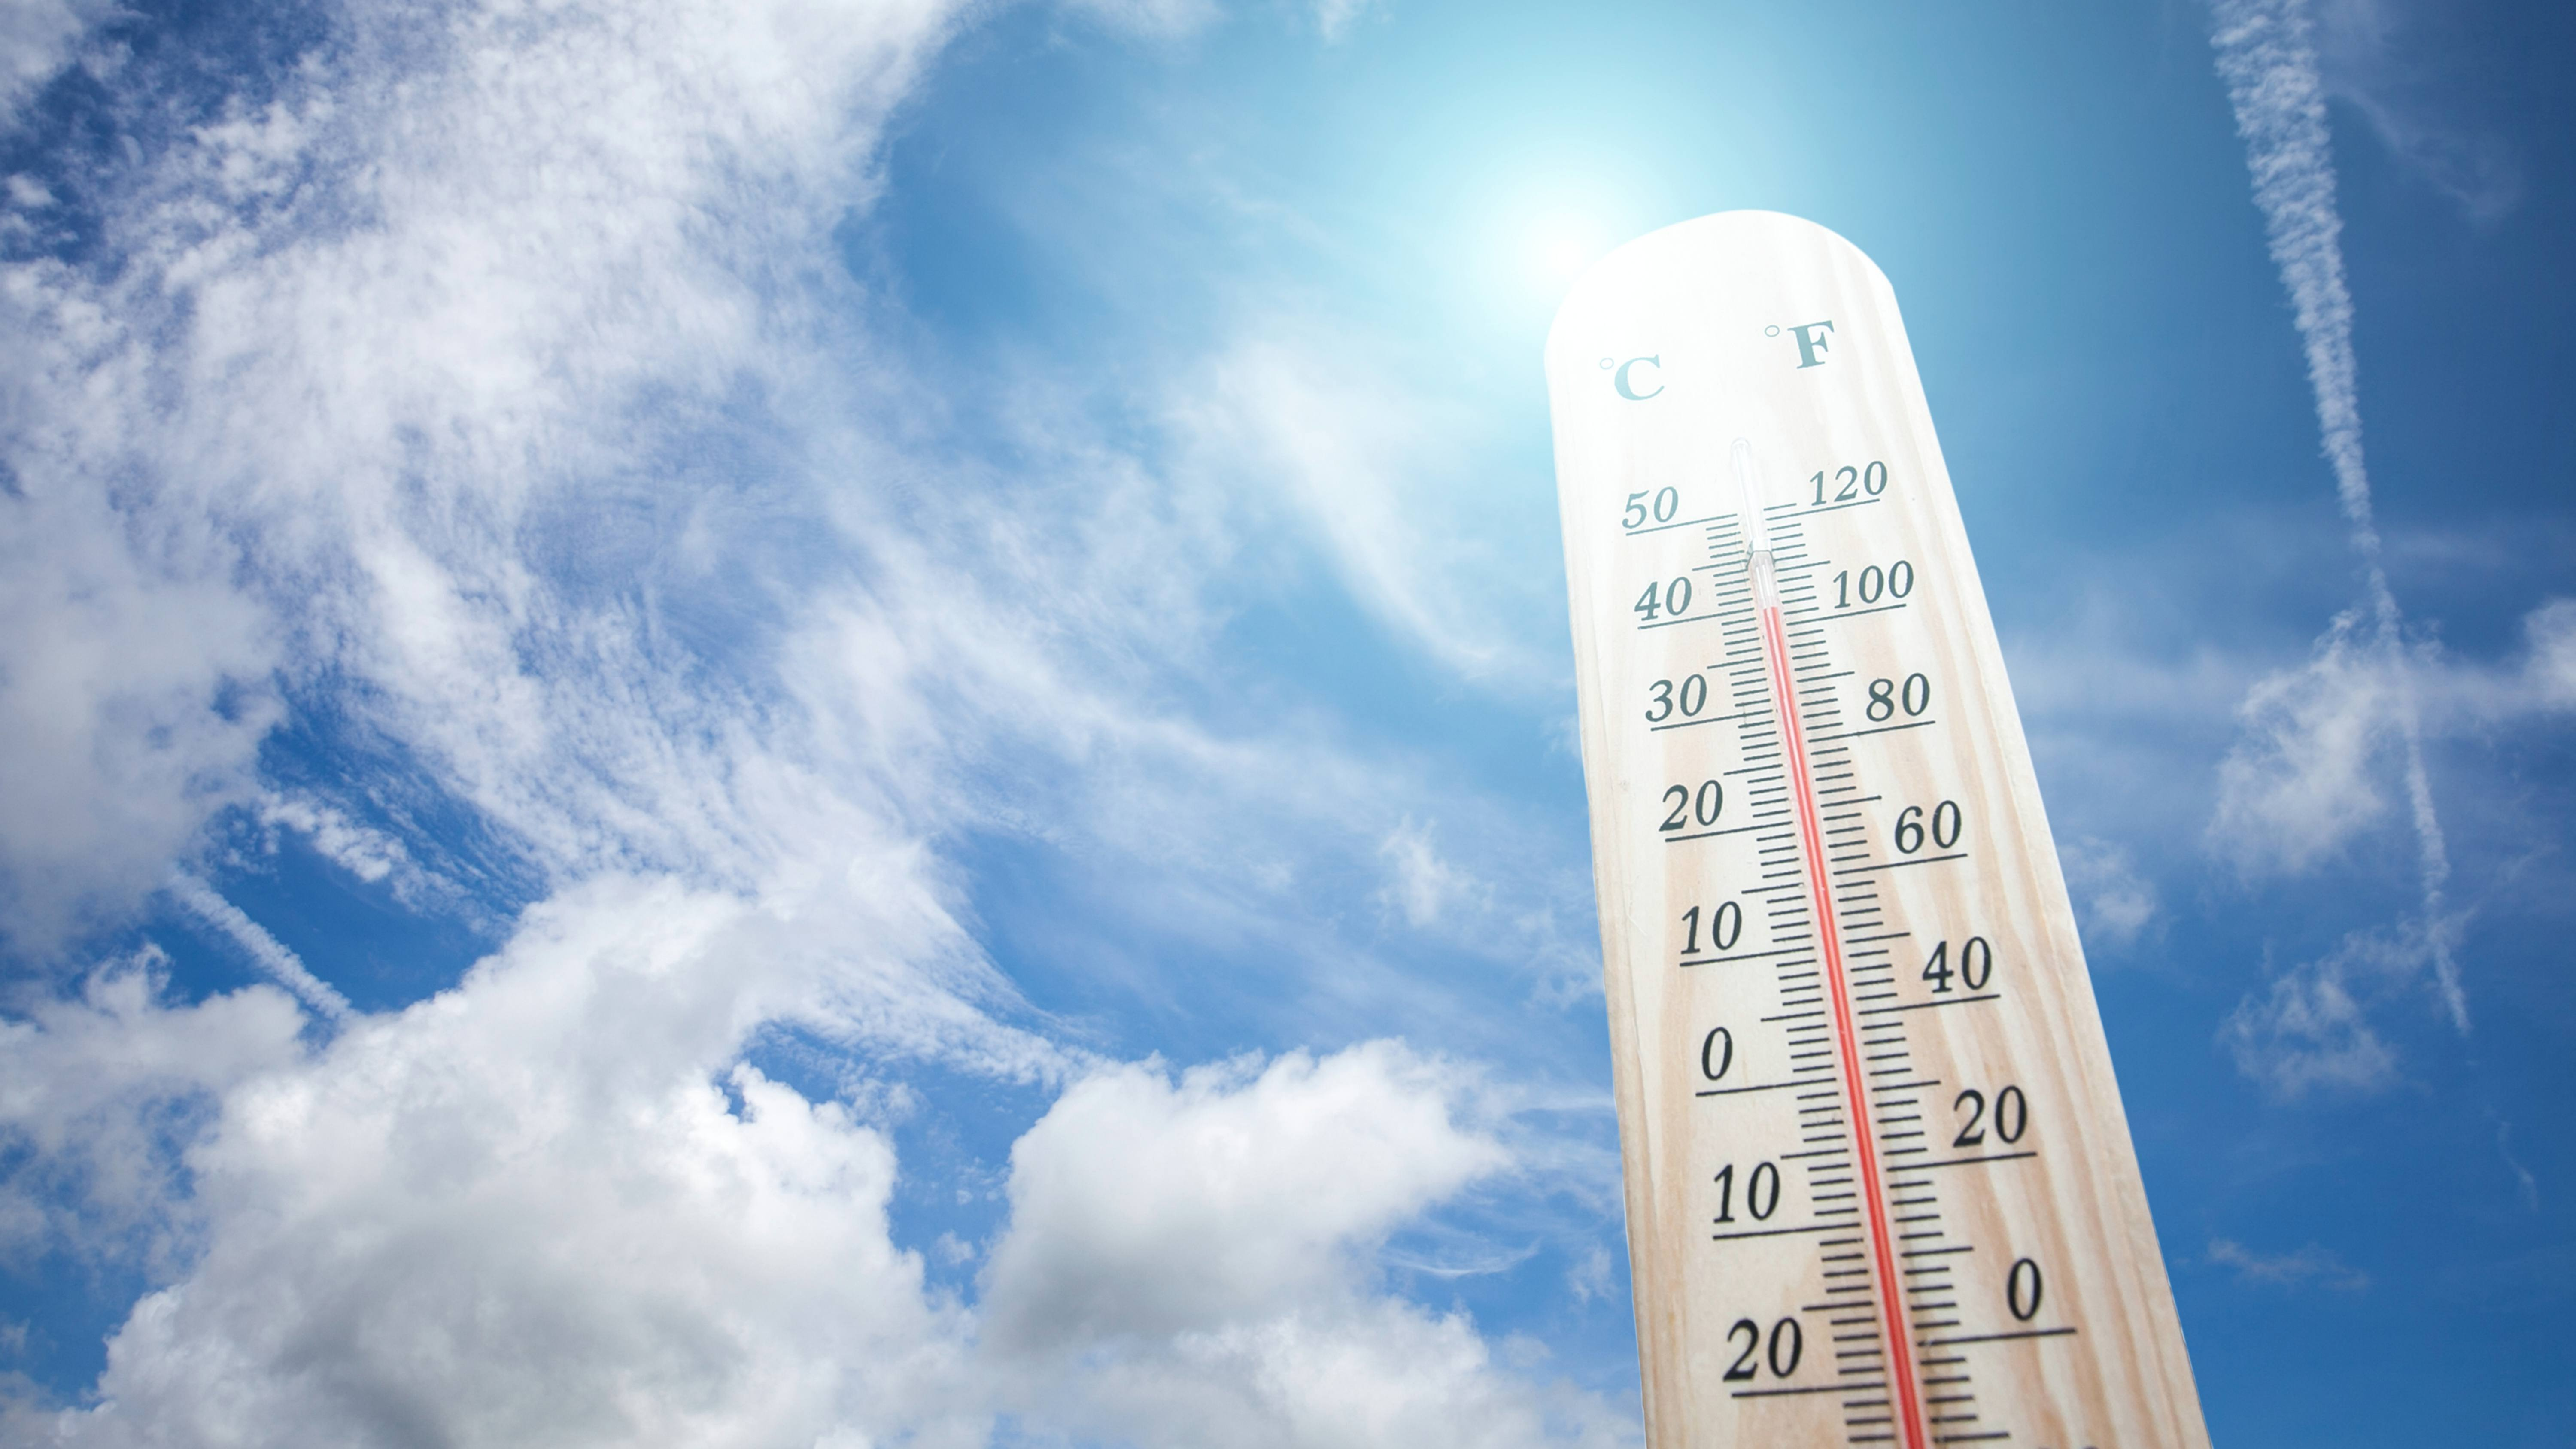 a thermometer on a hot day against a blue sky and sunshine, with high temperature readings, perhaps during a heatwave